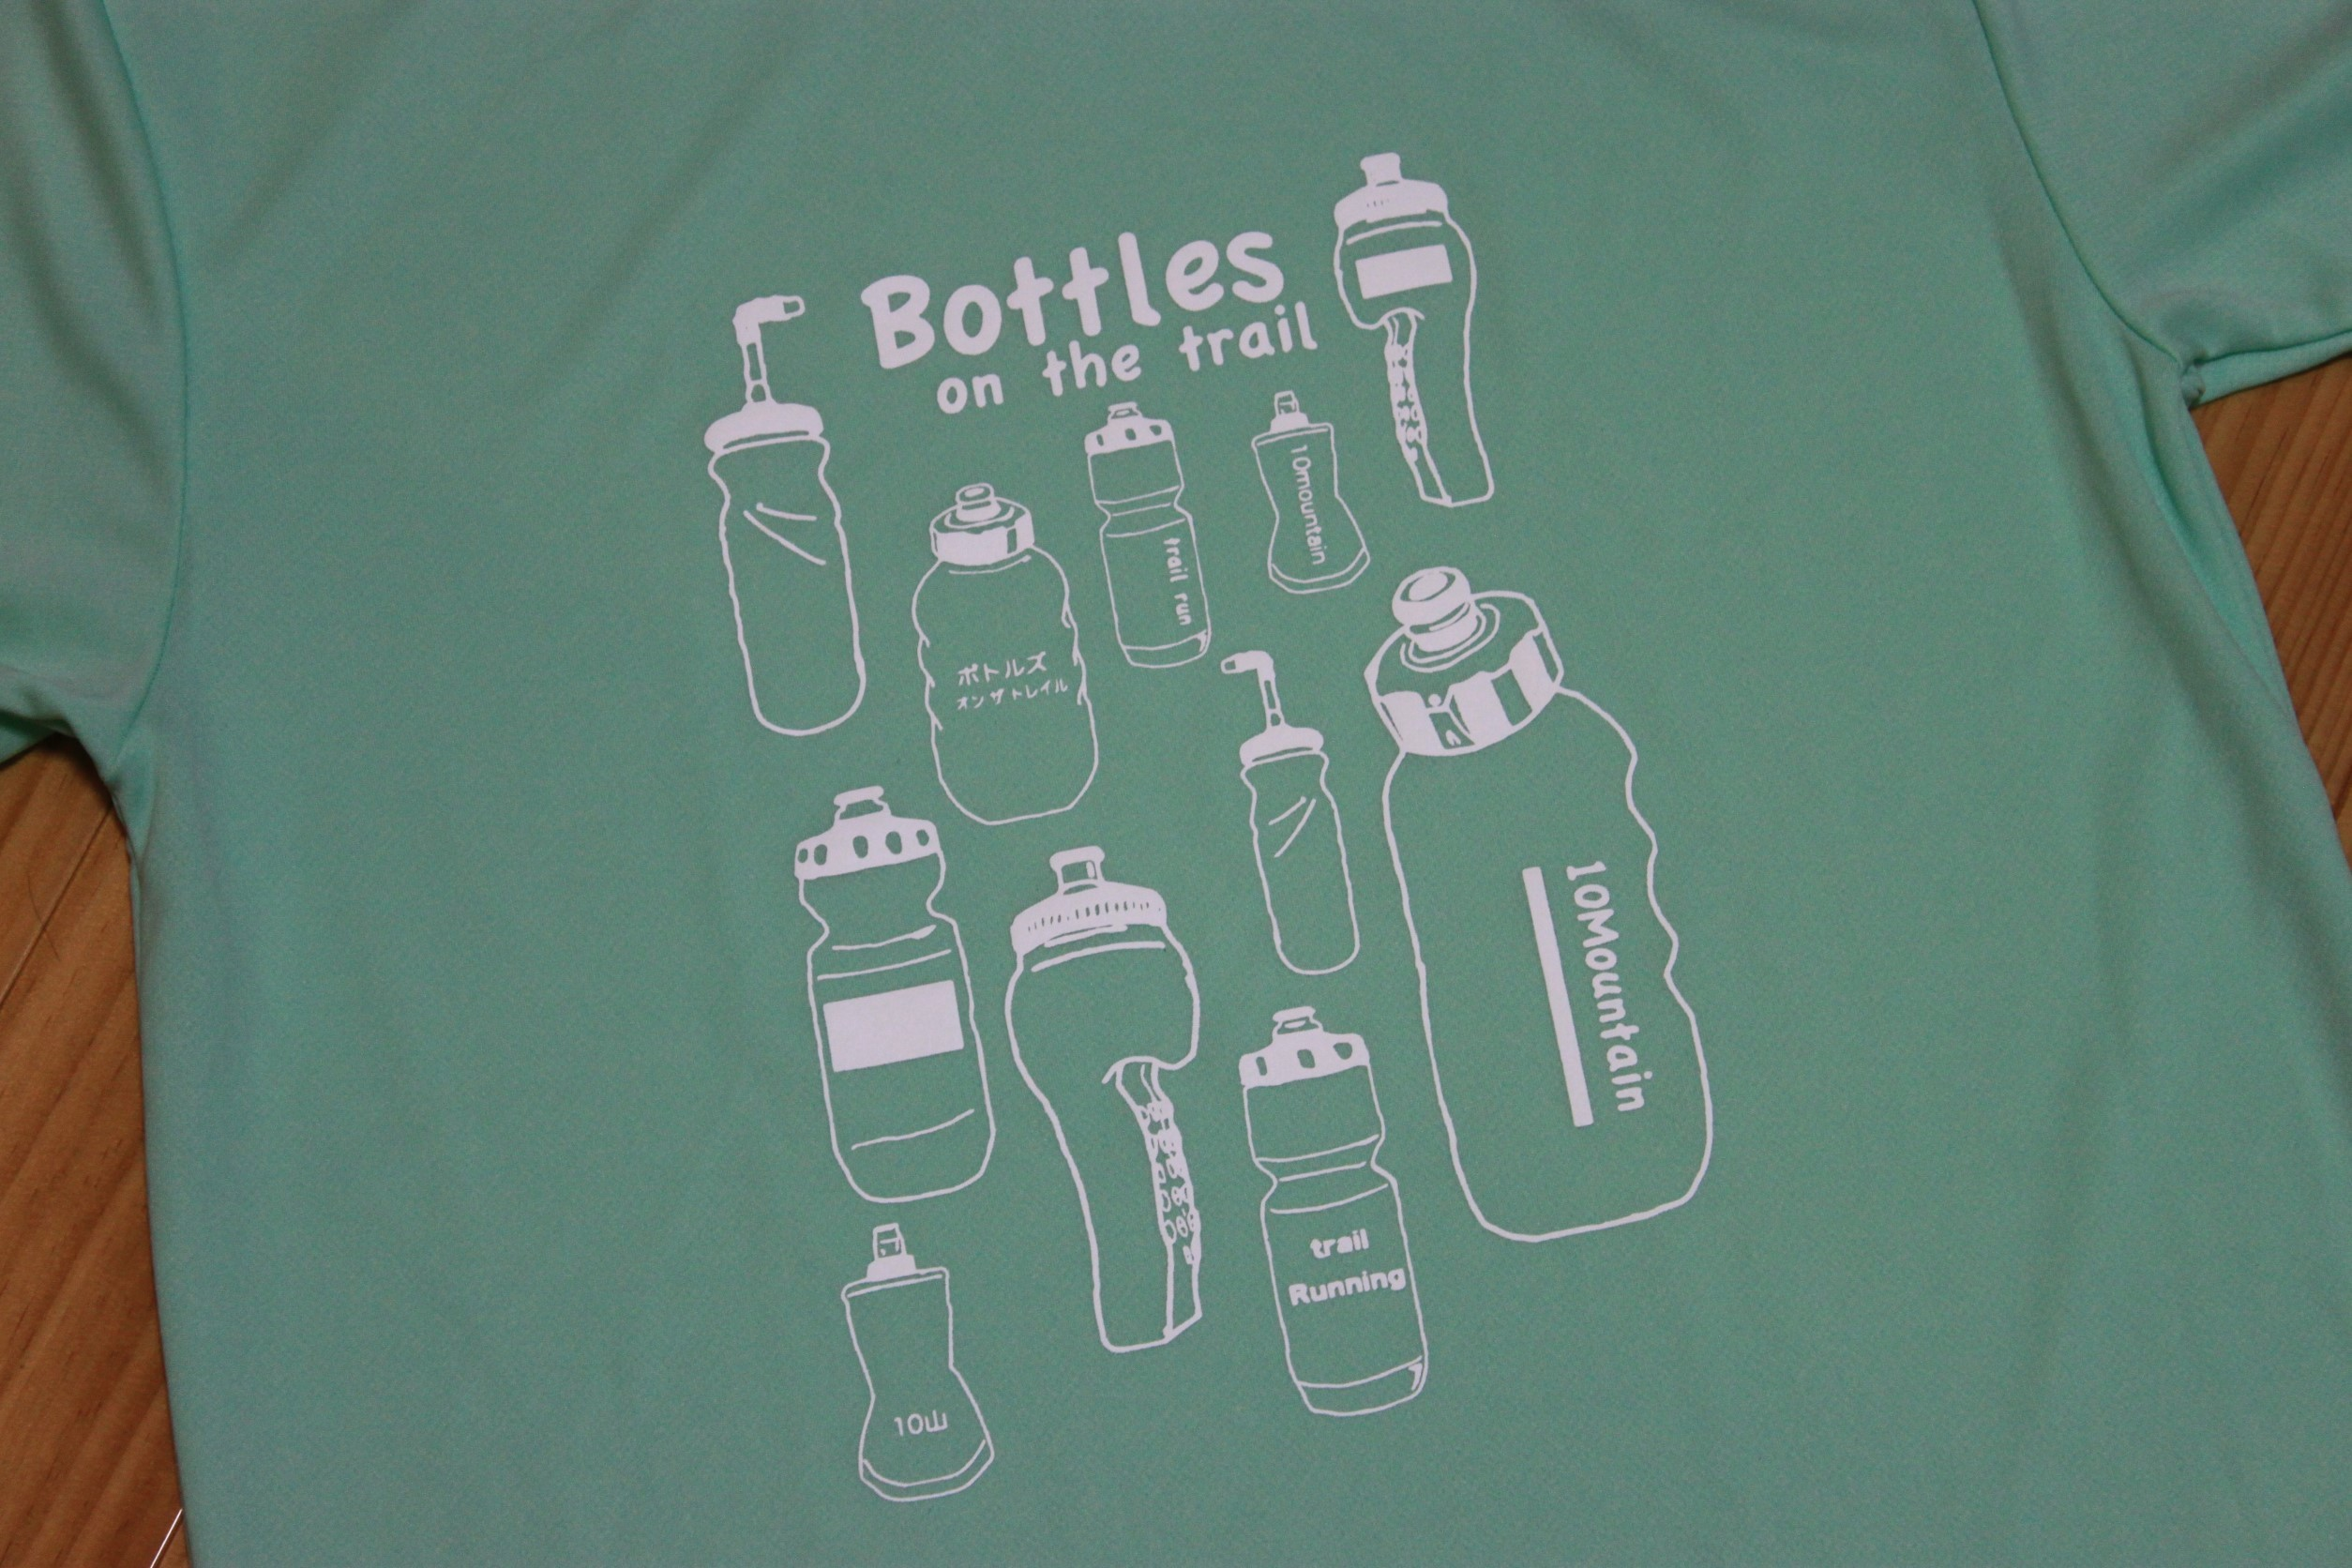 Bottles on the trail / Melon T-shirts